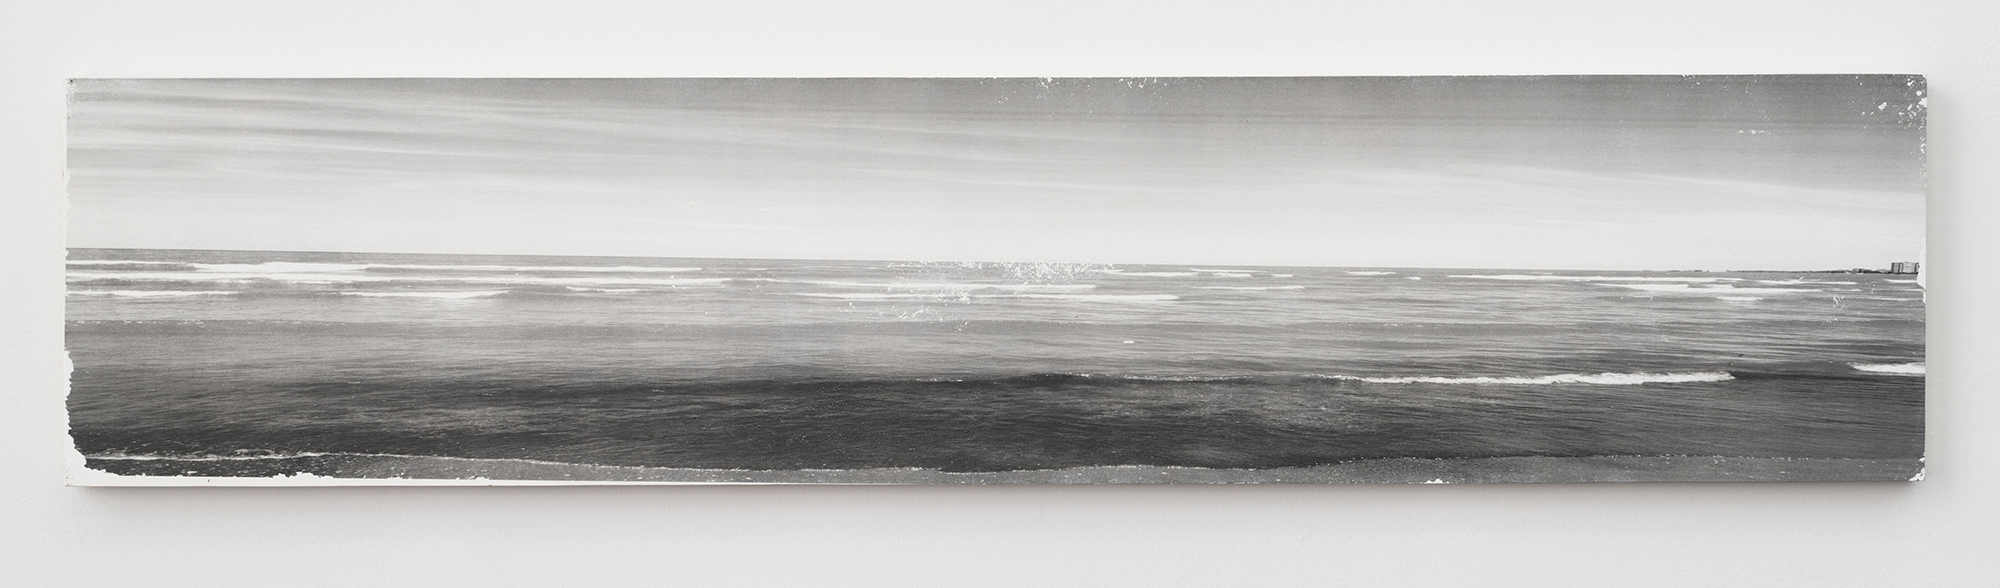 Ian Weaver, Shoreline VI, 2014, photographic transfer with sanding and wax on panel, 18 x 86 inches